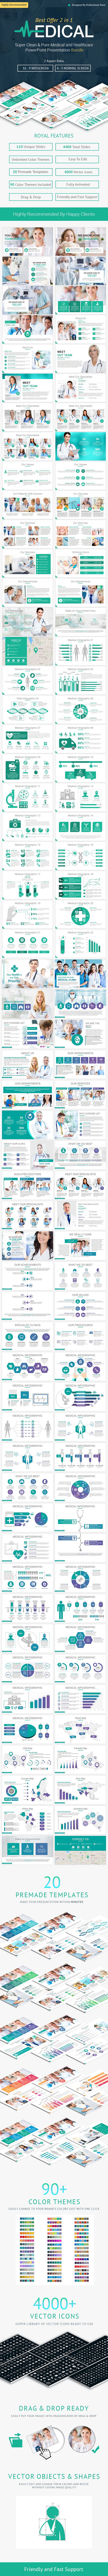 2 in 1 medical and healthcare powerpoint presentation bundle medical and healthcare 2 powerpoint presentation template by rojdark find what you need with our super creative presentation collection medical and toneelgroepblik Images